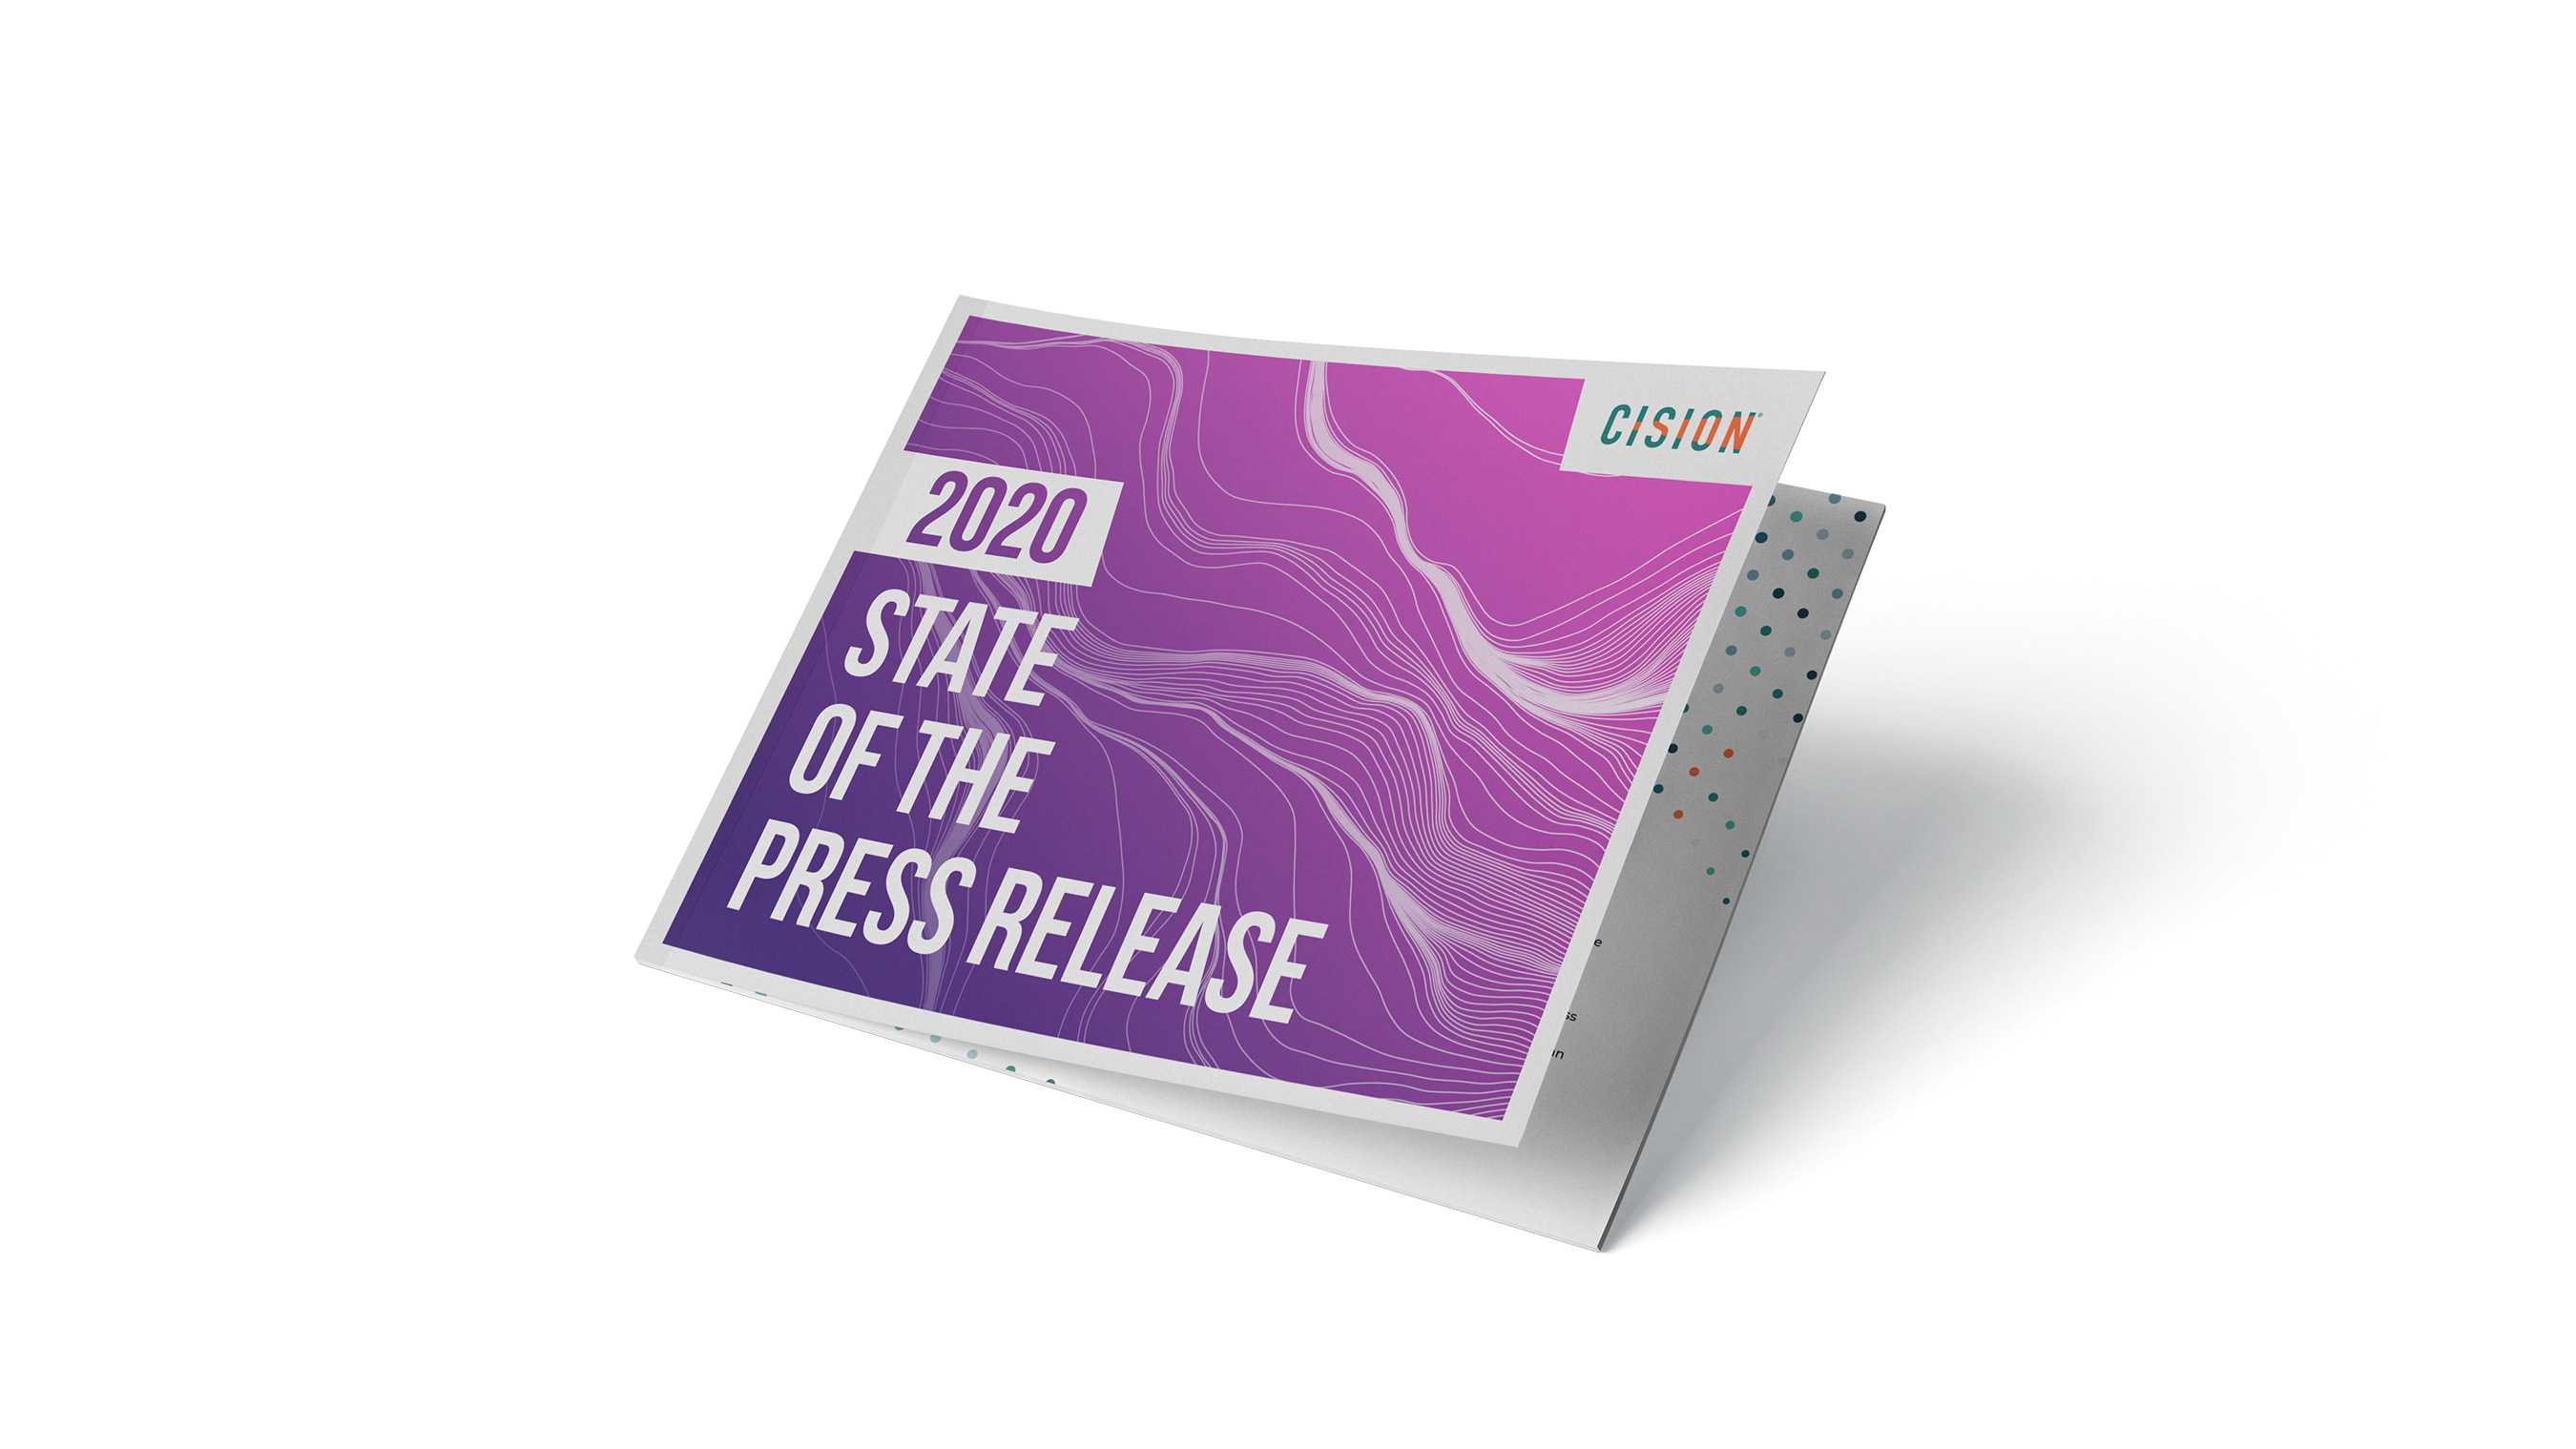 Cision's State of the Press Release Report